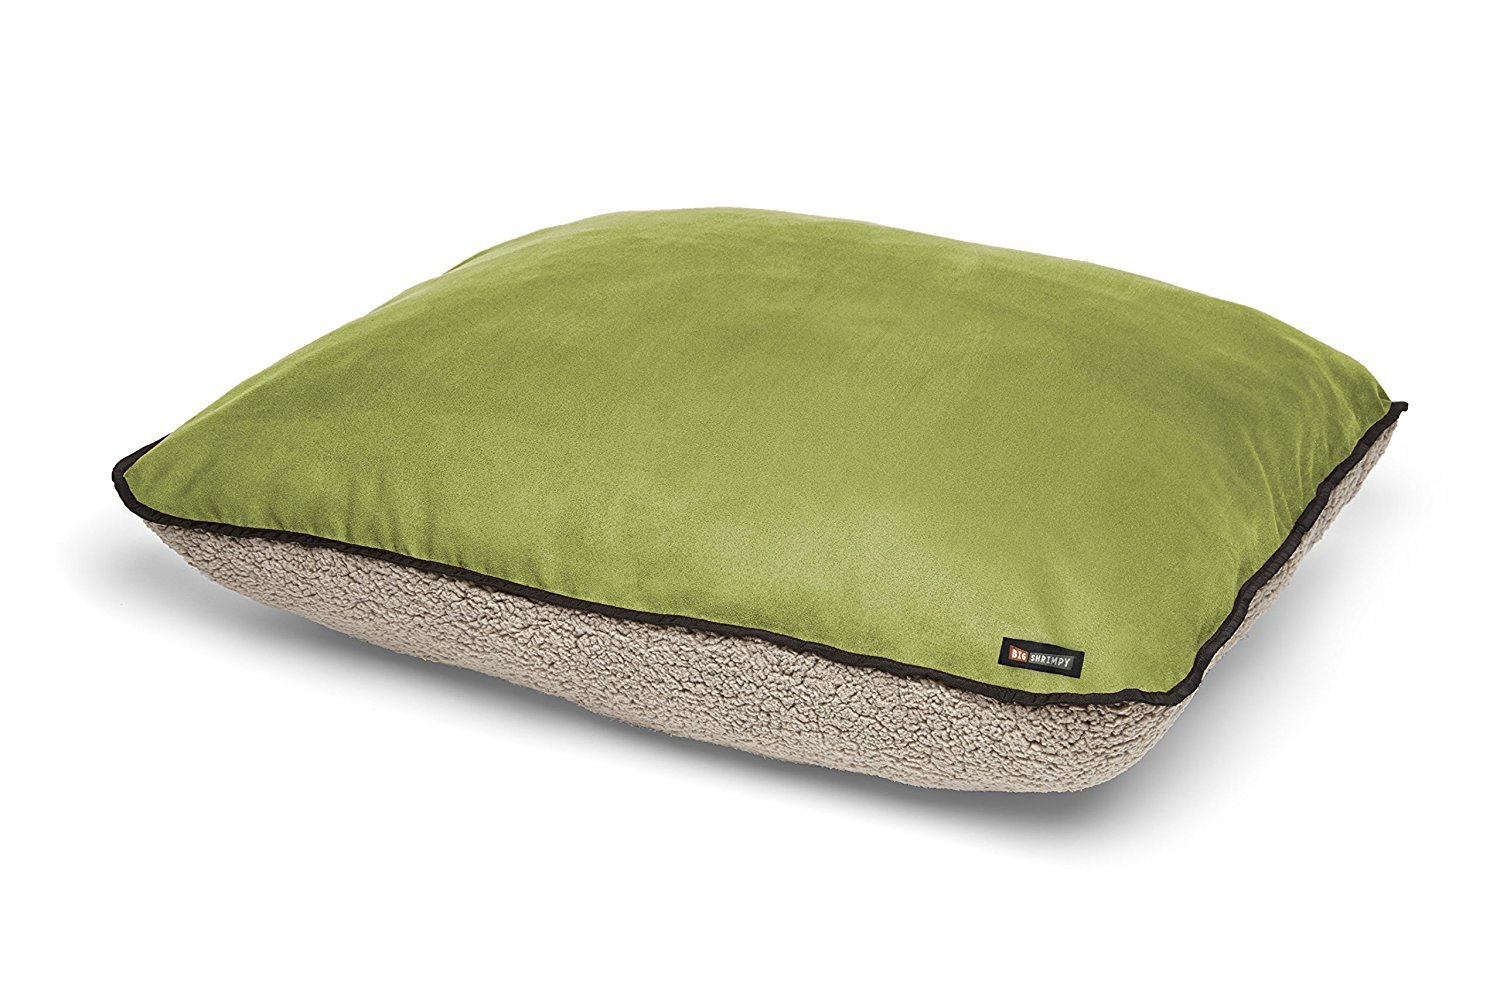 Big Shrimpy Bogo Dog Bed Replacement Cover, Faux Suede and Fleece, Large, Leaf